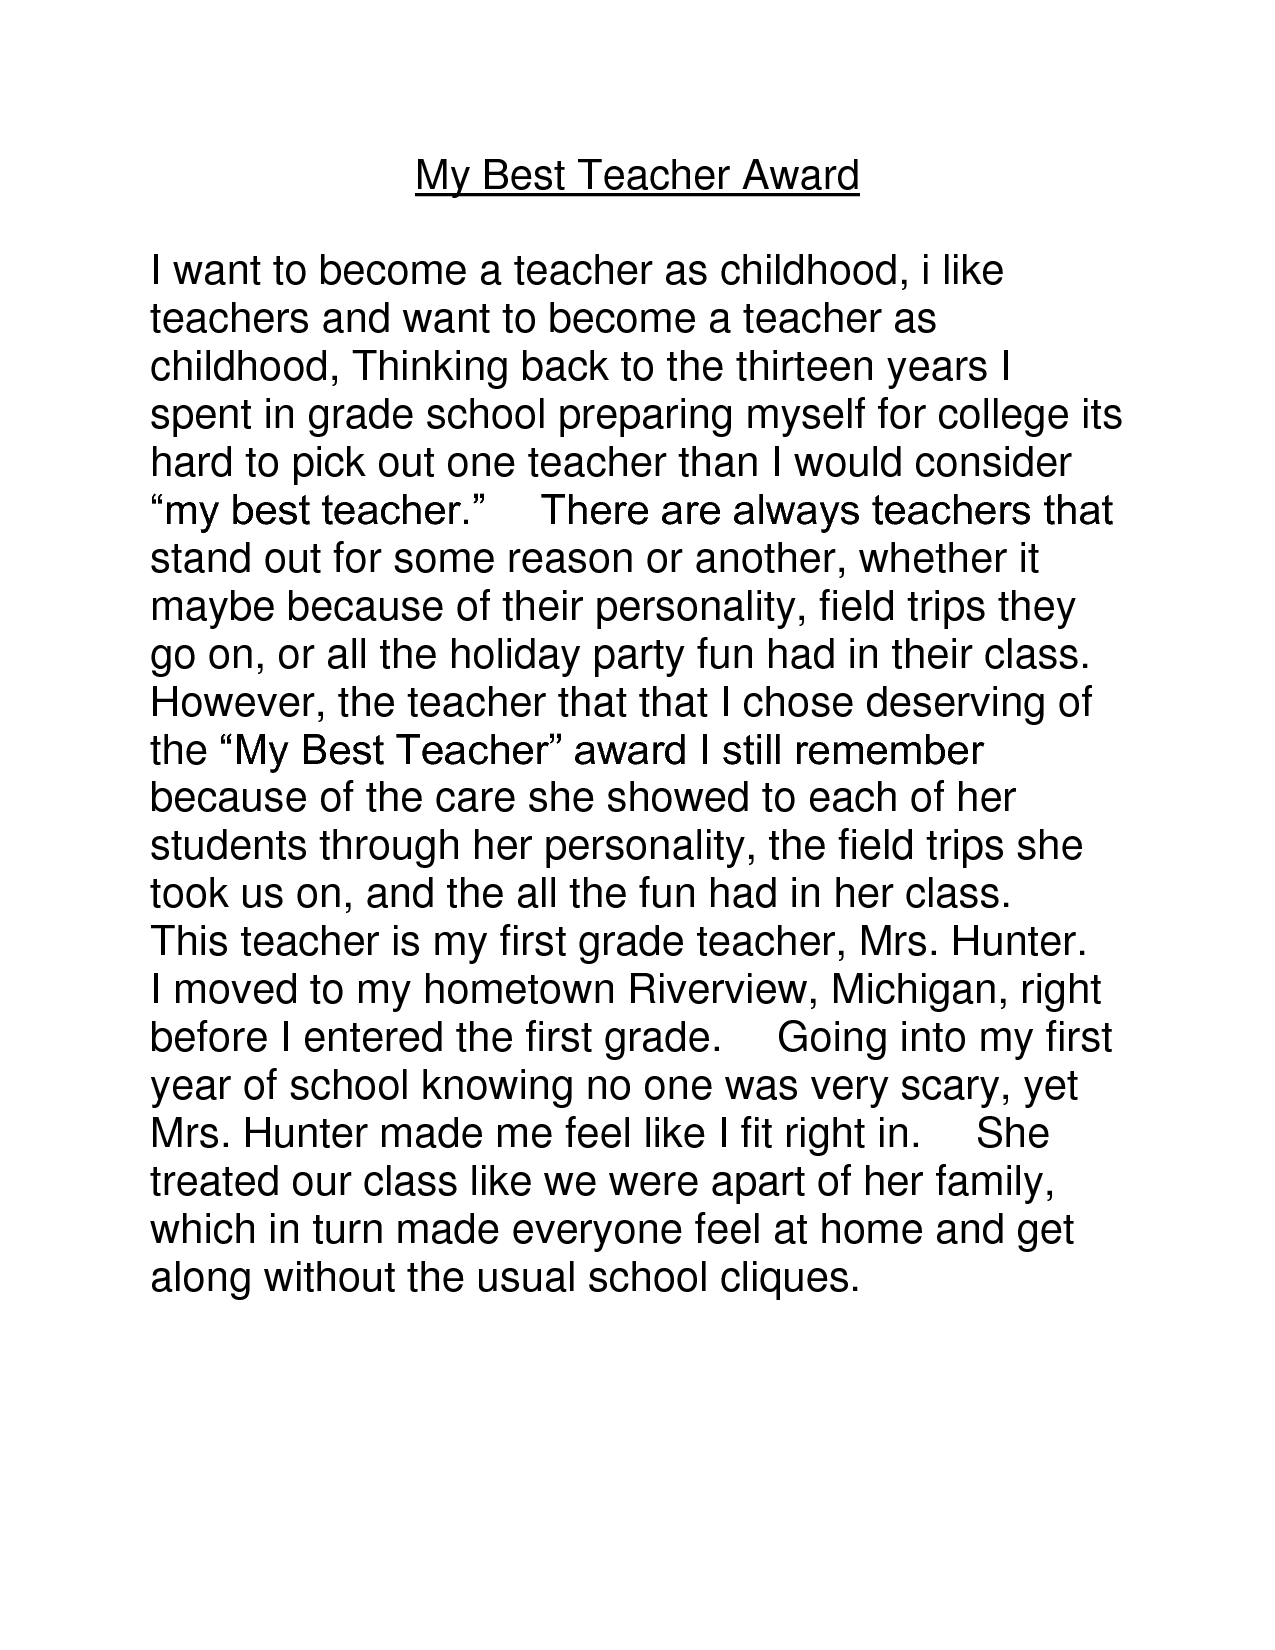 010 3819916770 My Hero English Essay An About Fascinating Heroine Teacher 500 Words A Narrative Full